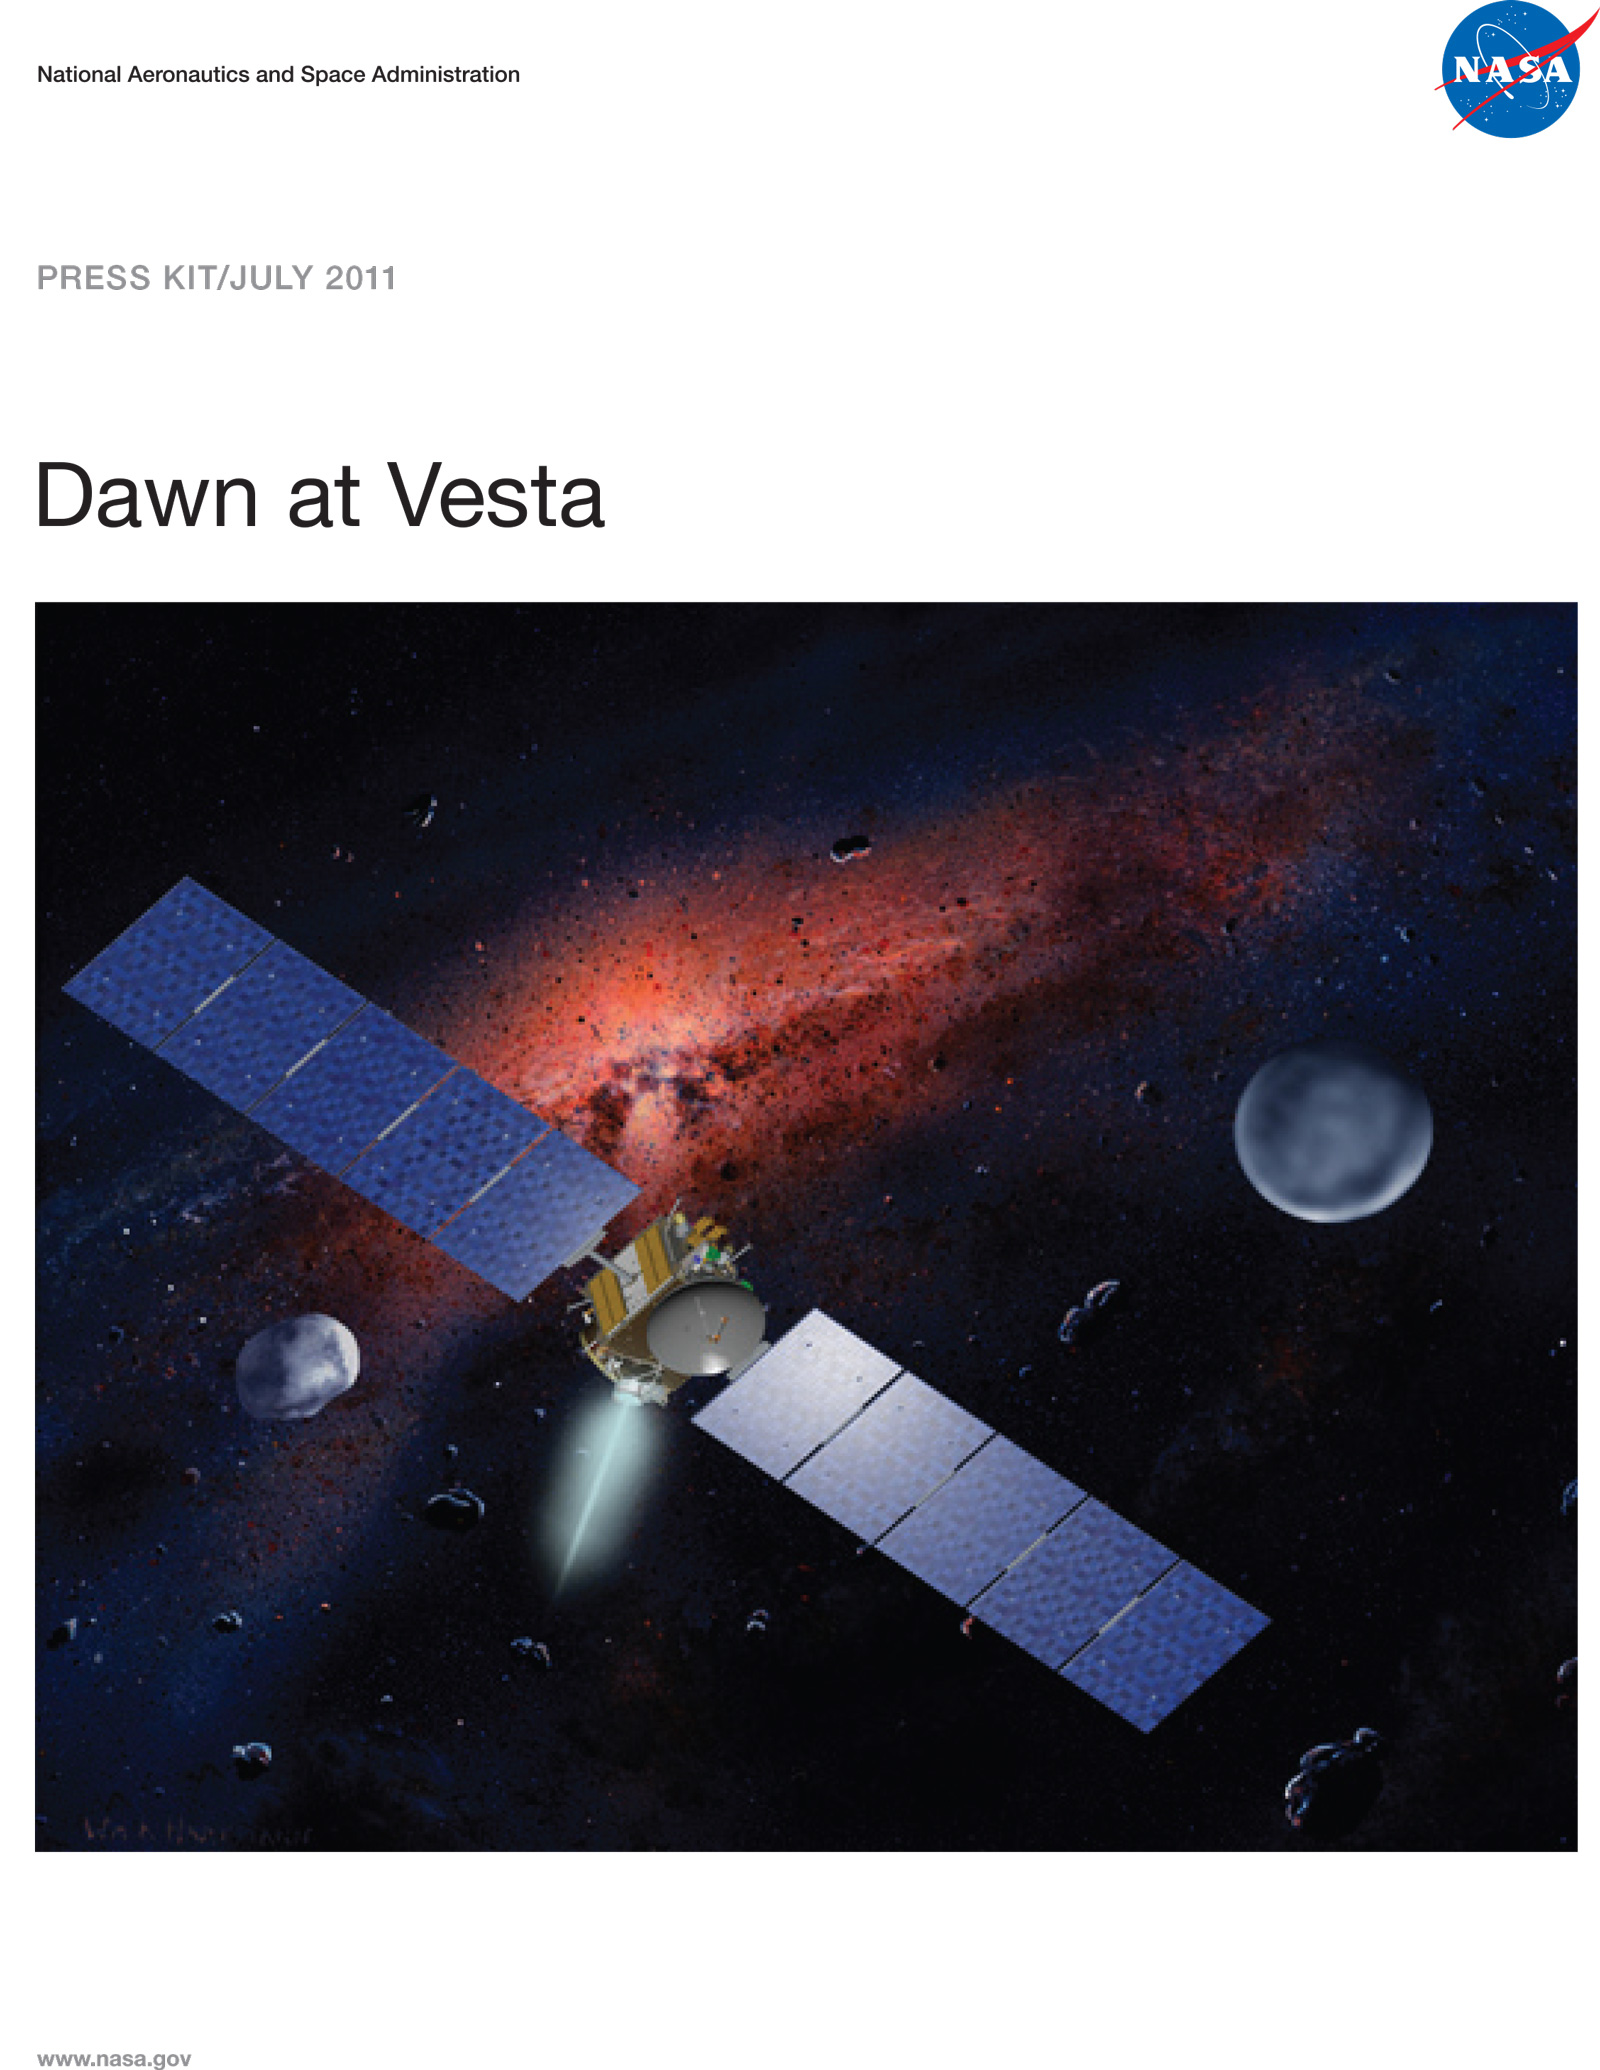 Facts about the Dawn mission.